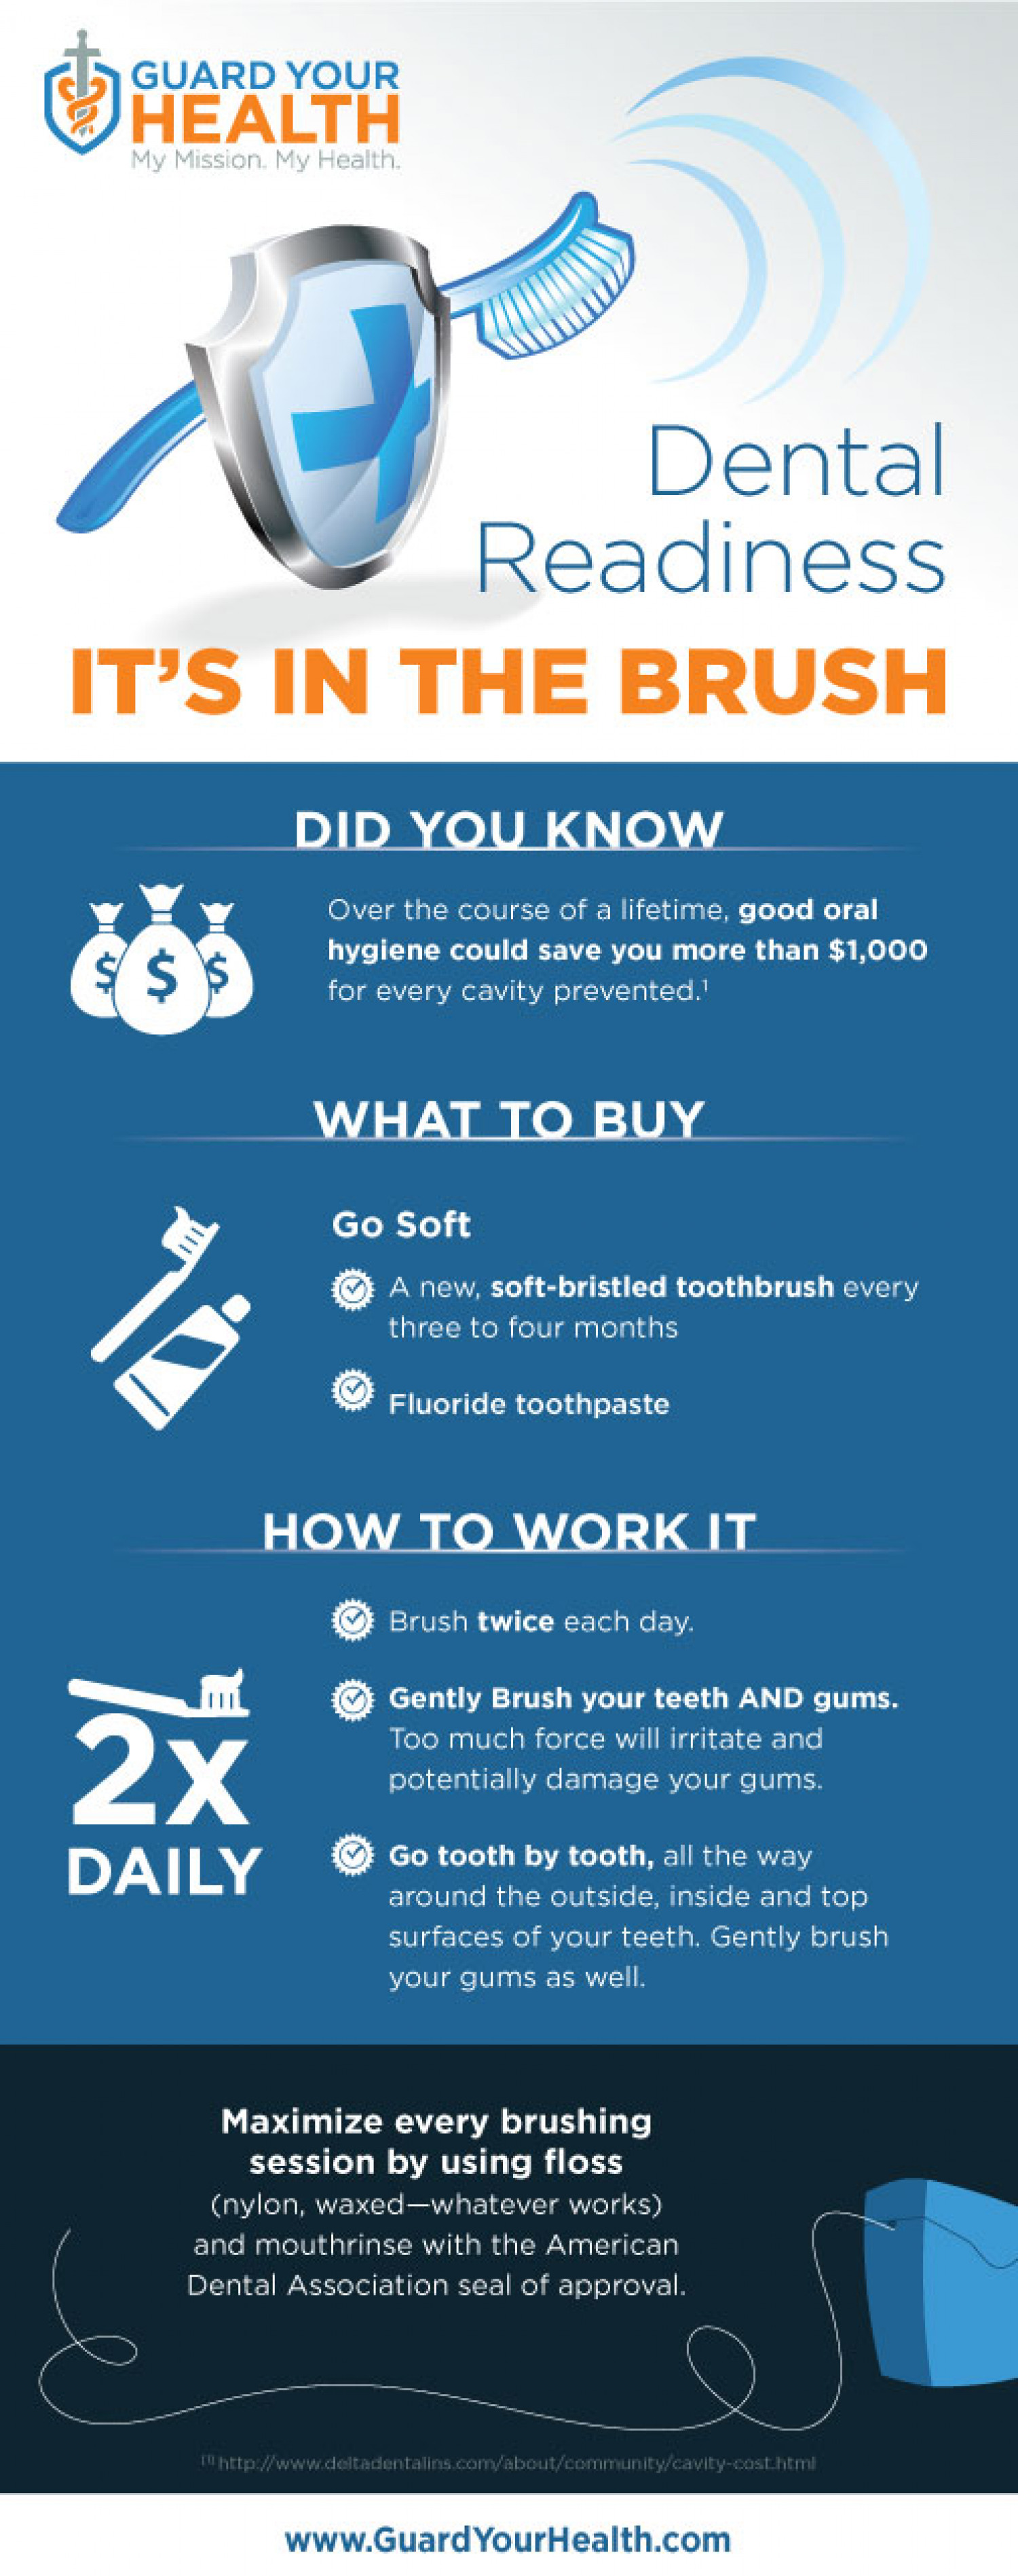 Dental Readiness: It's in the Brush Infographic